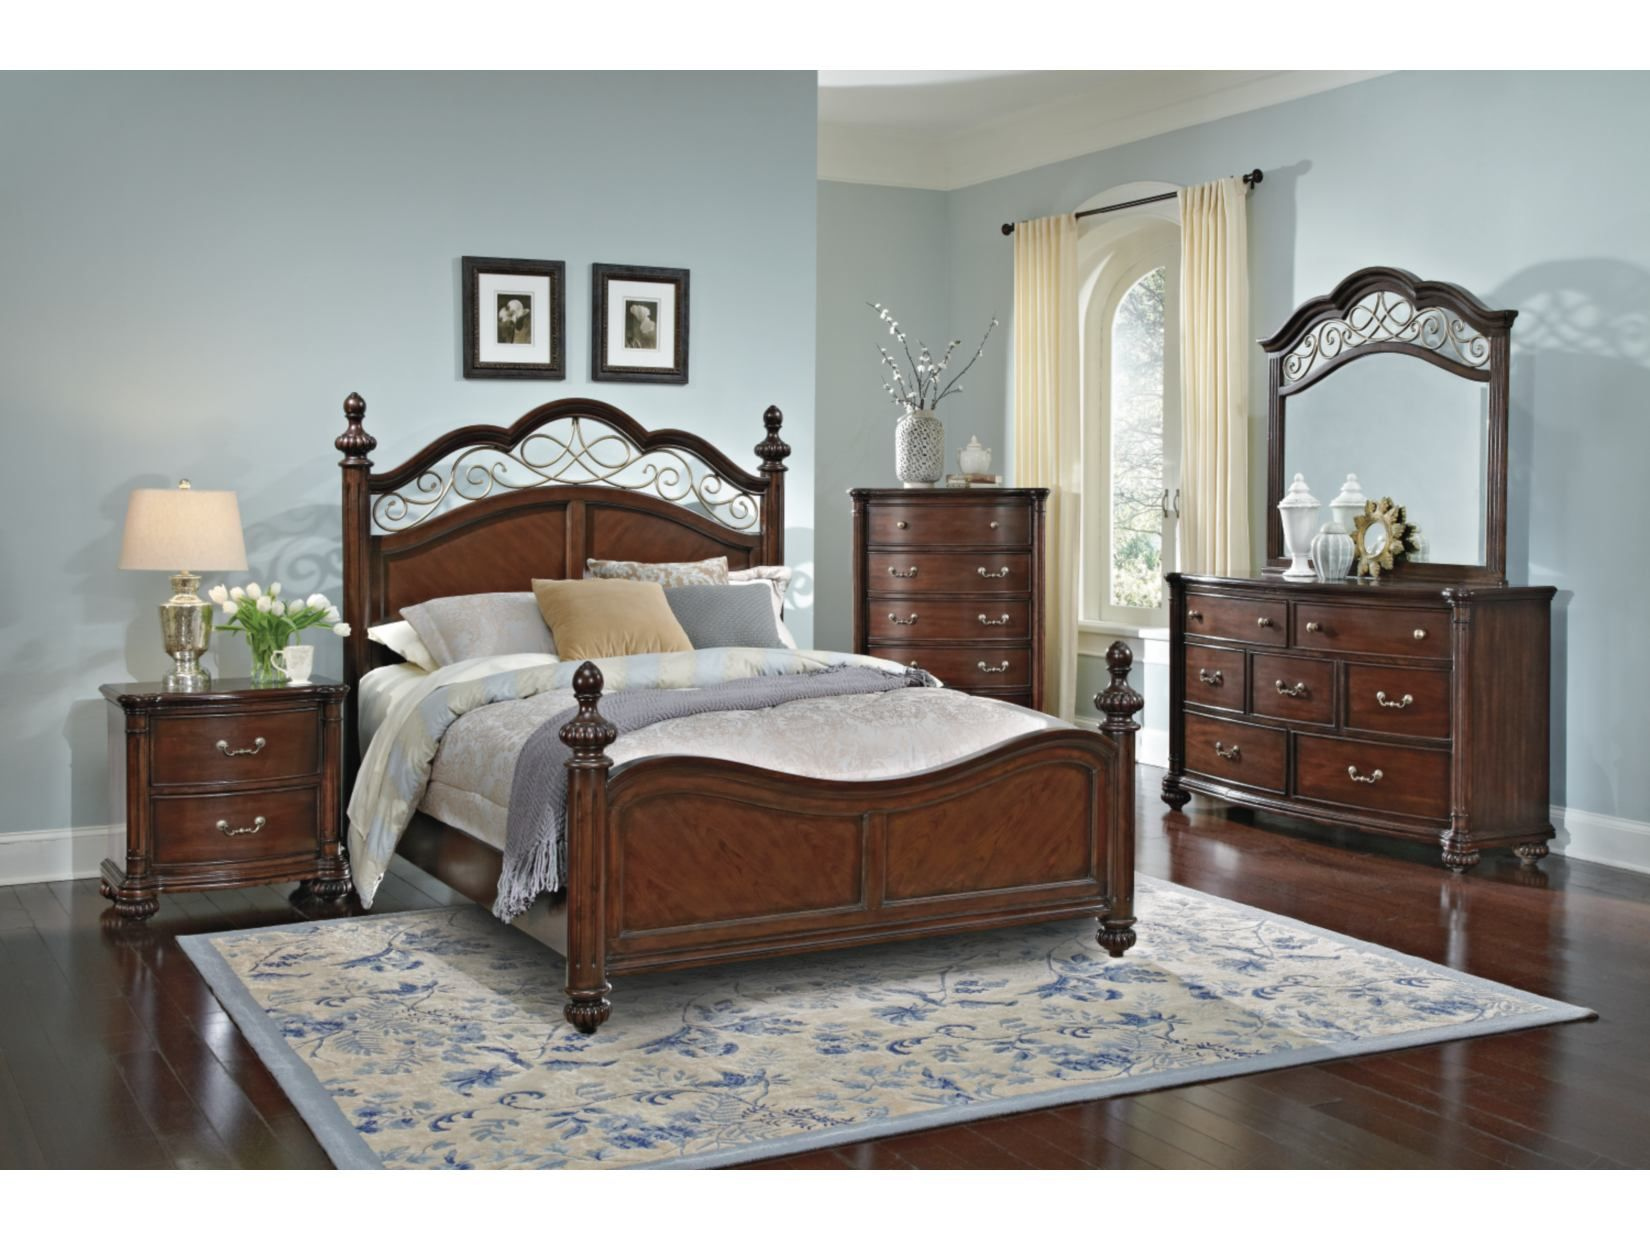 If the bedroom set was my style: Derbyshire Cherry Set - Value City ...